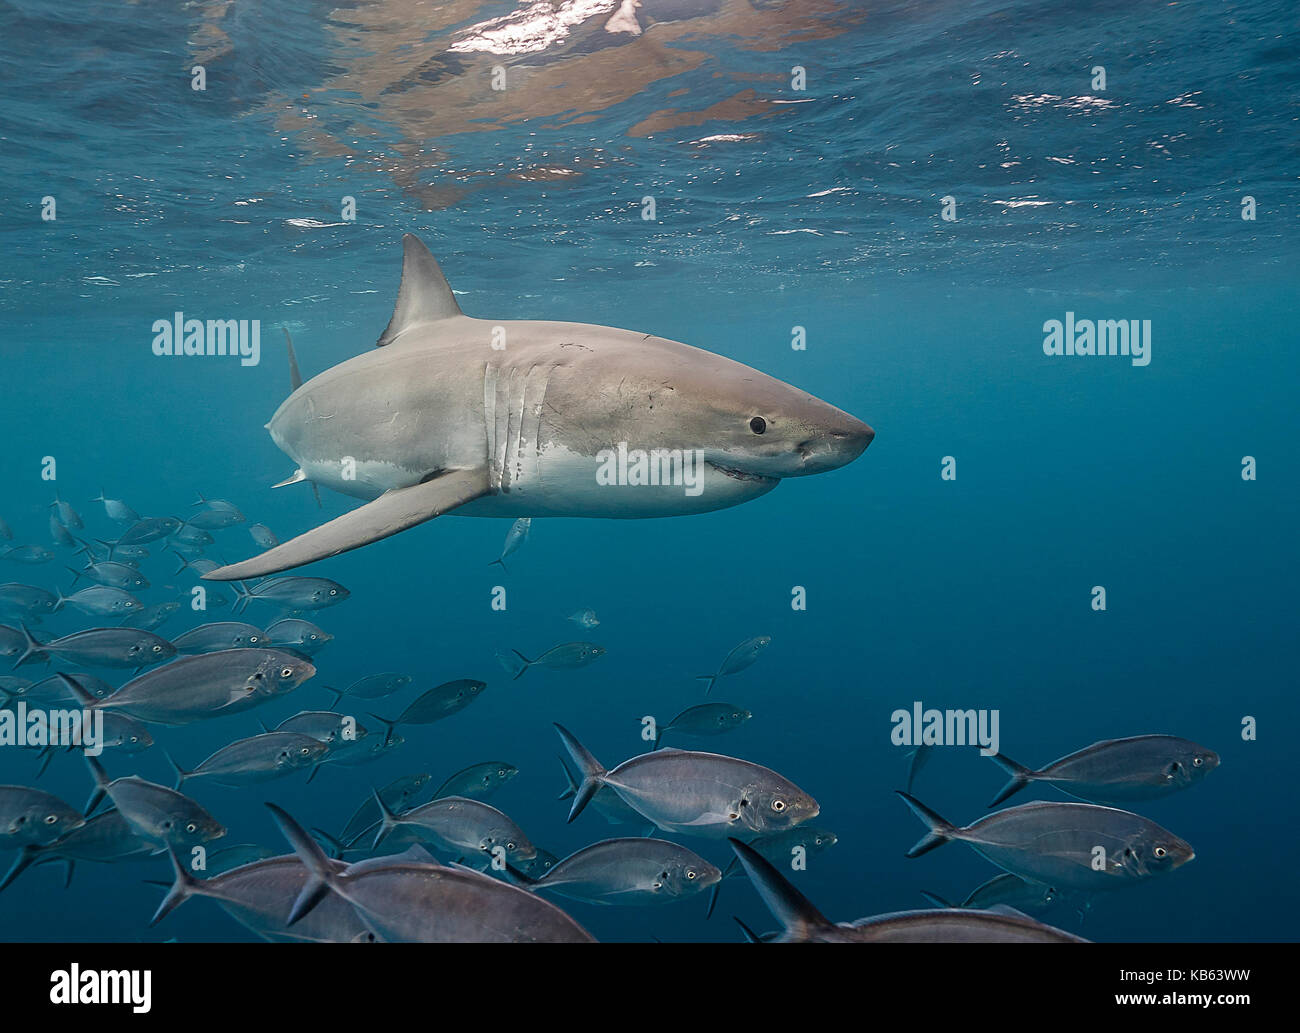 Great white shark and trevally jacks, Neptune islands, South Australia. - Stock Image